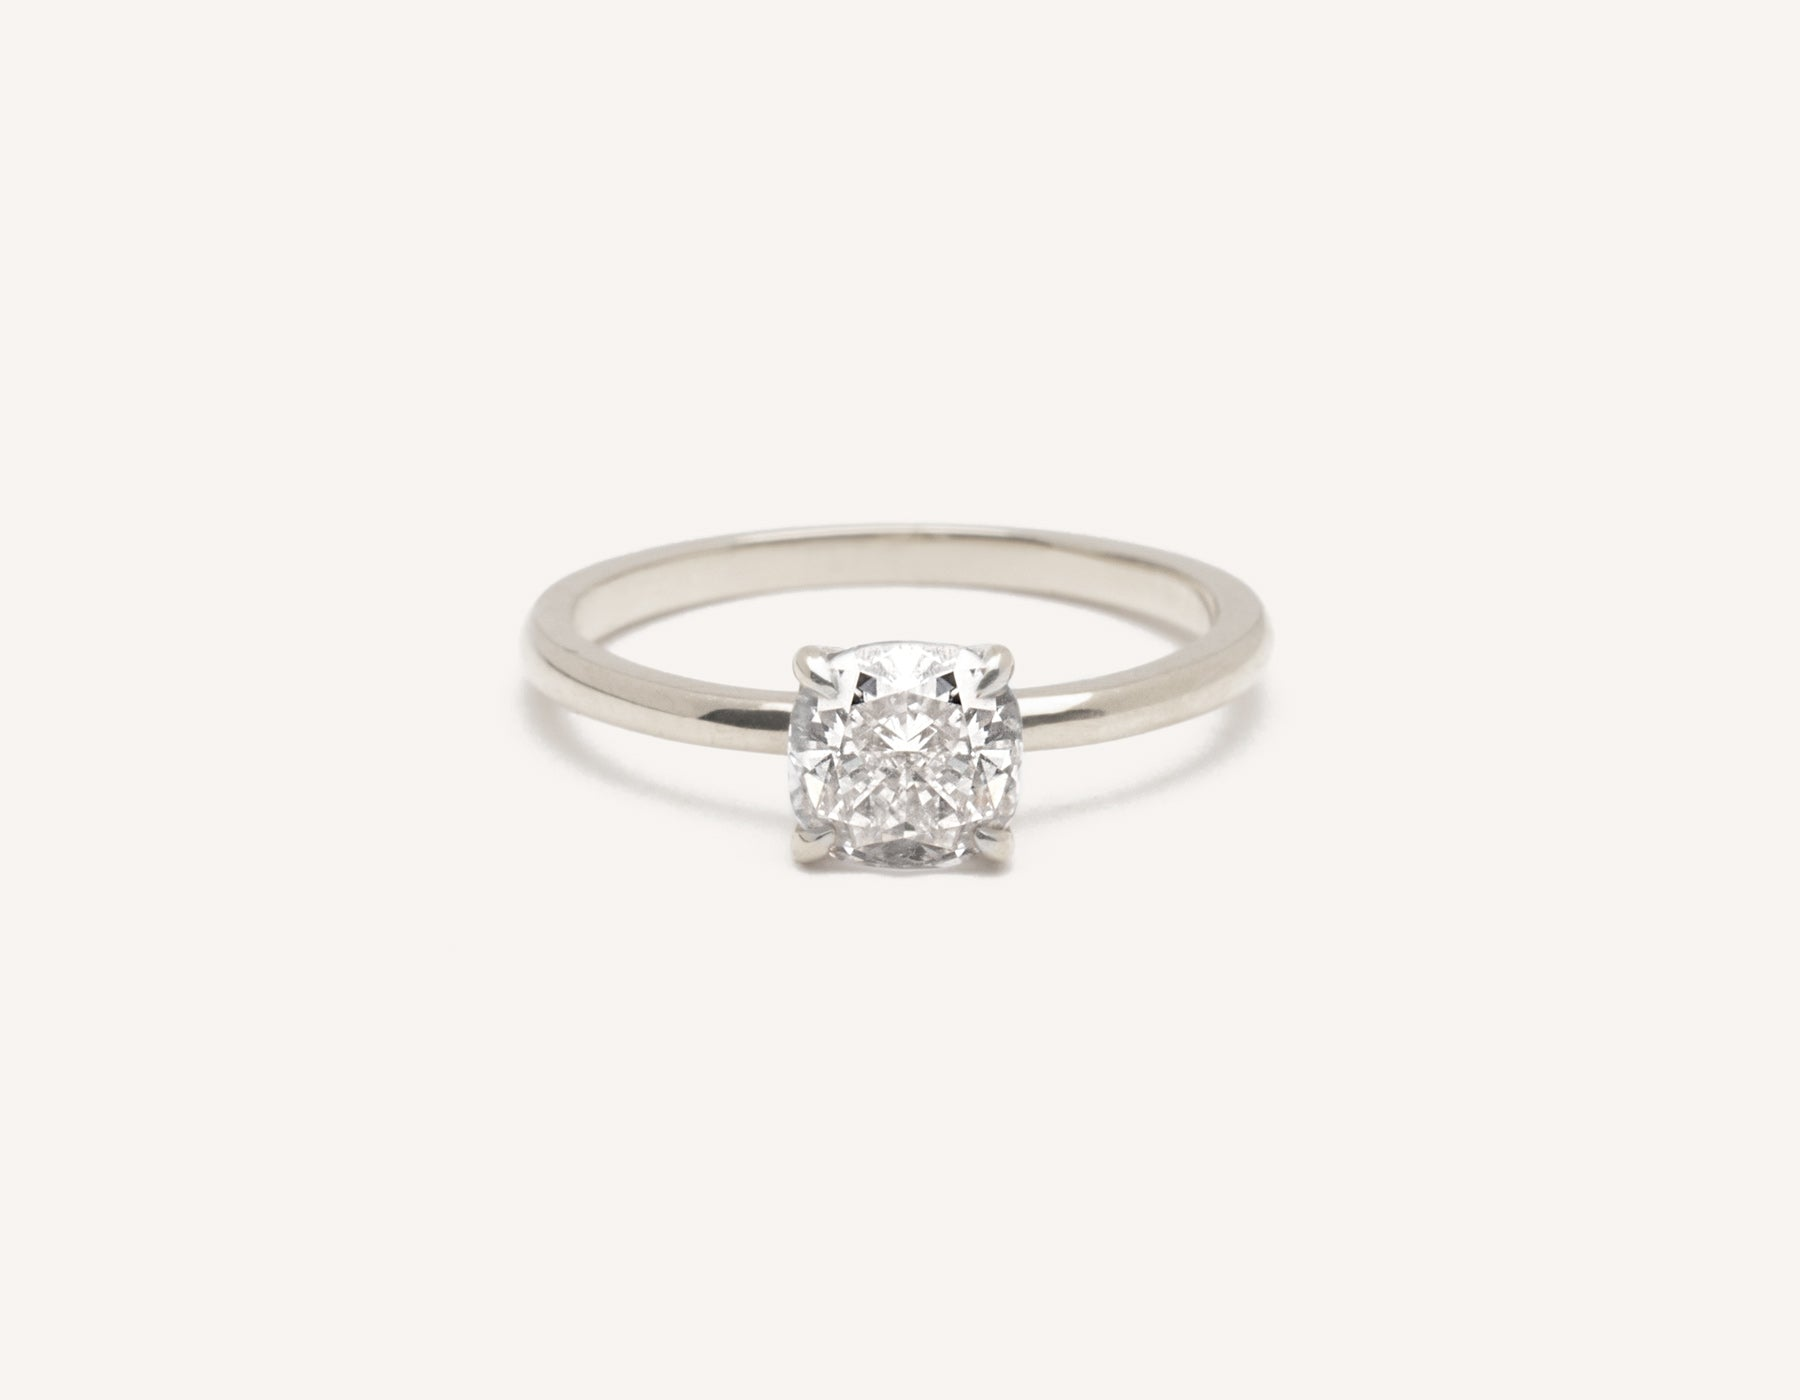 Minimalist 18k solid white gold The Cushion engagement ring 1 ct diamond Vrai and Oro